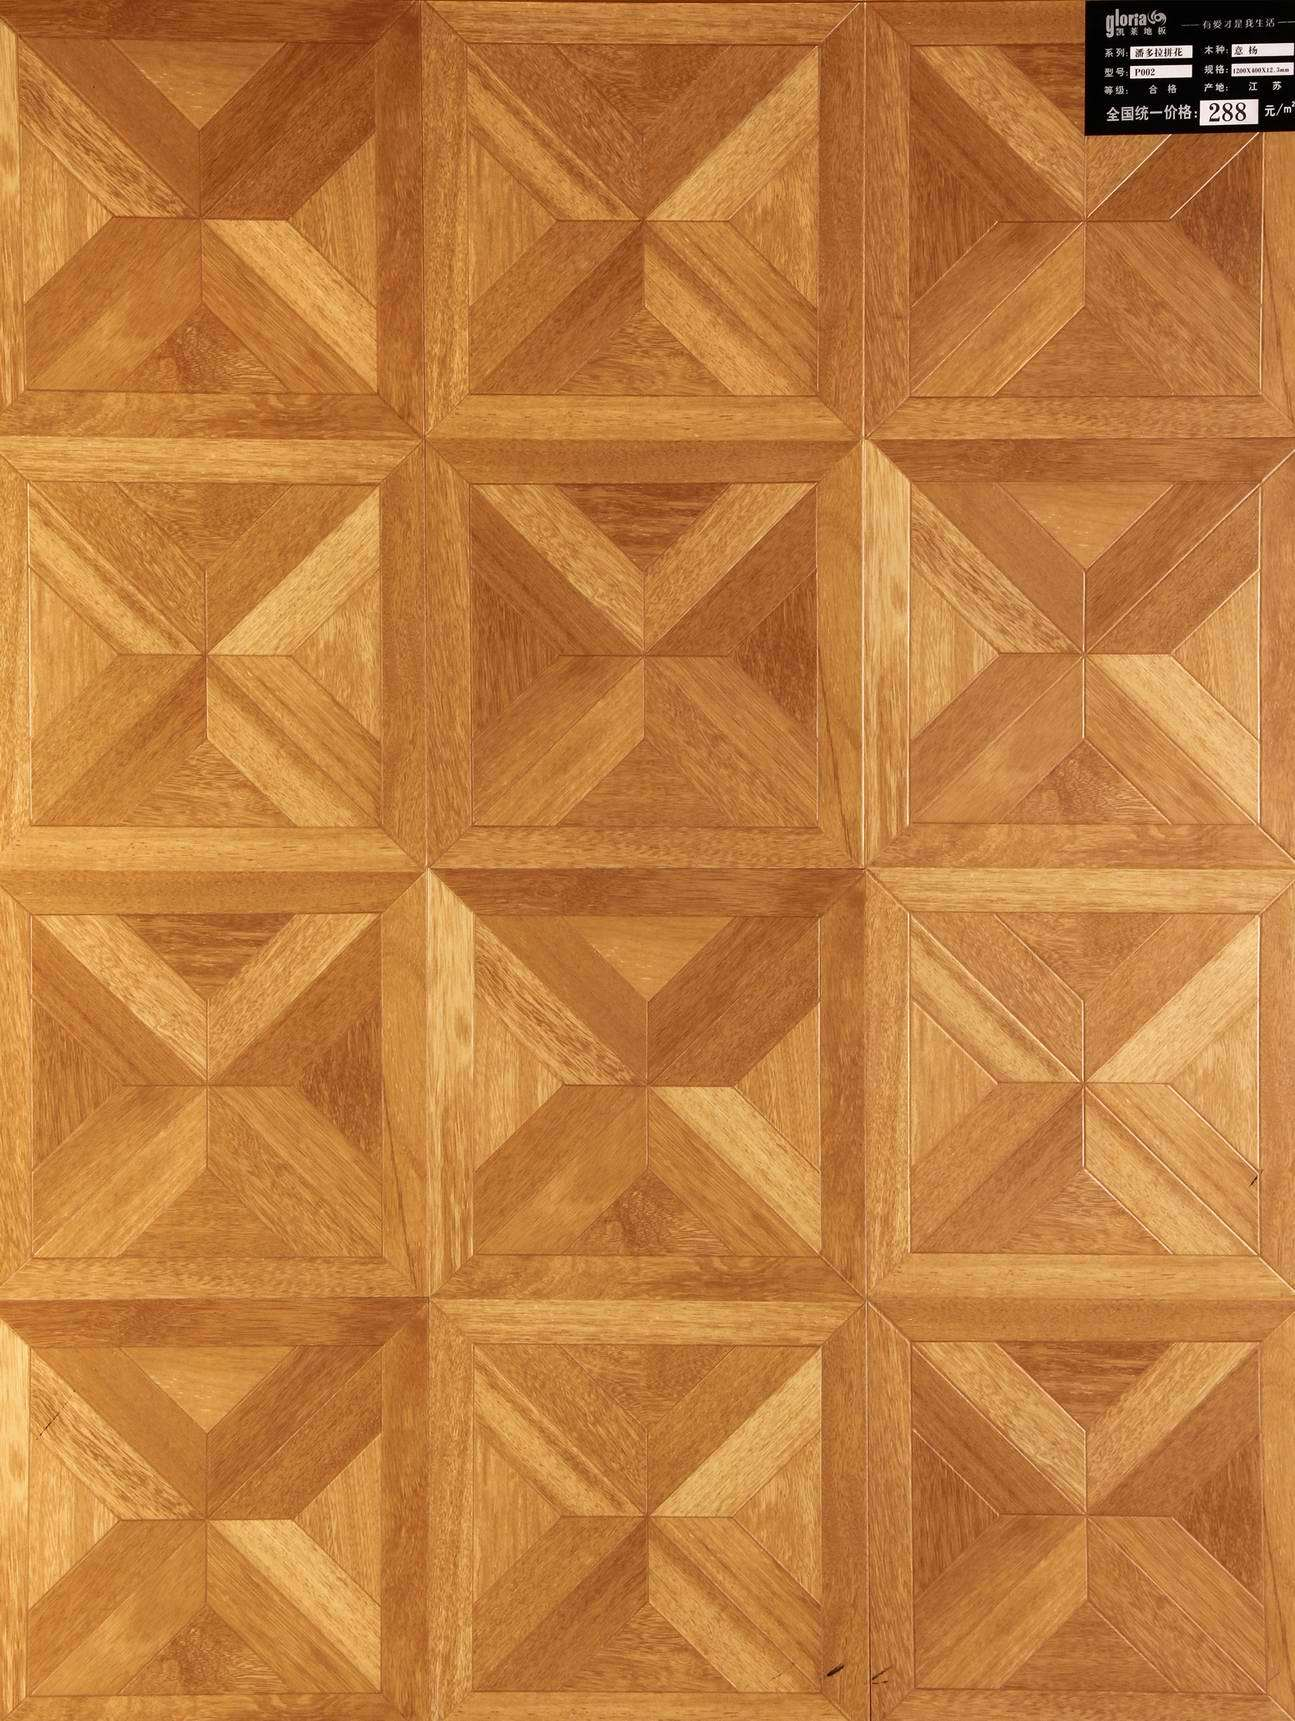 Parquet Flooring | decorating zen